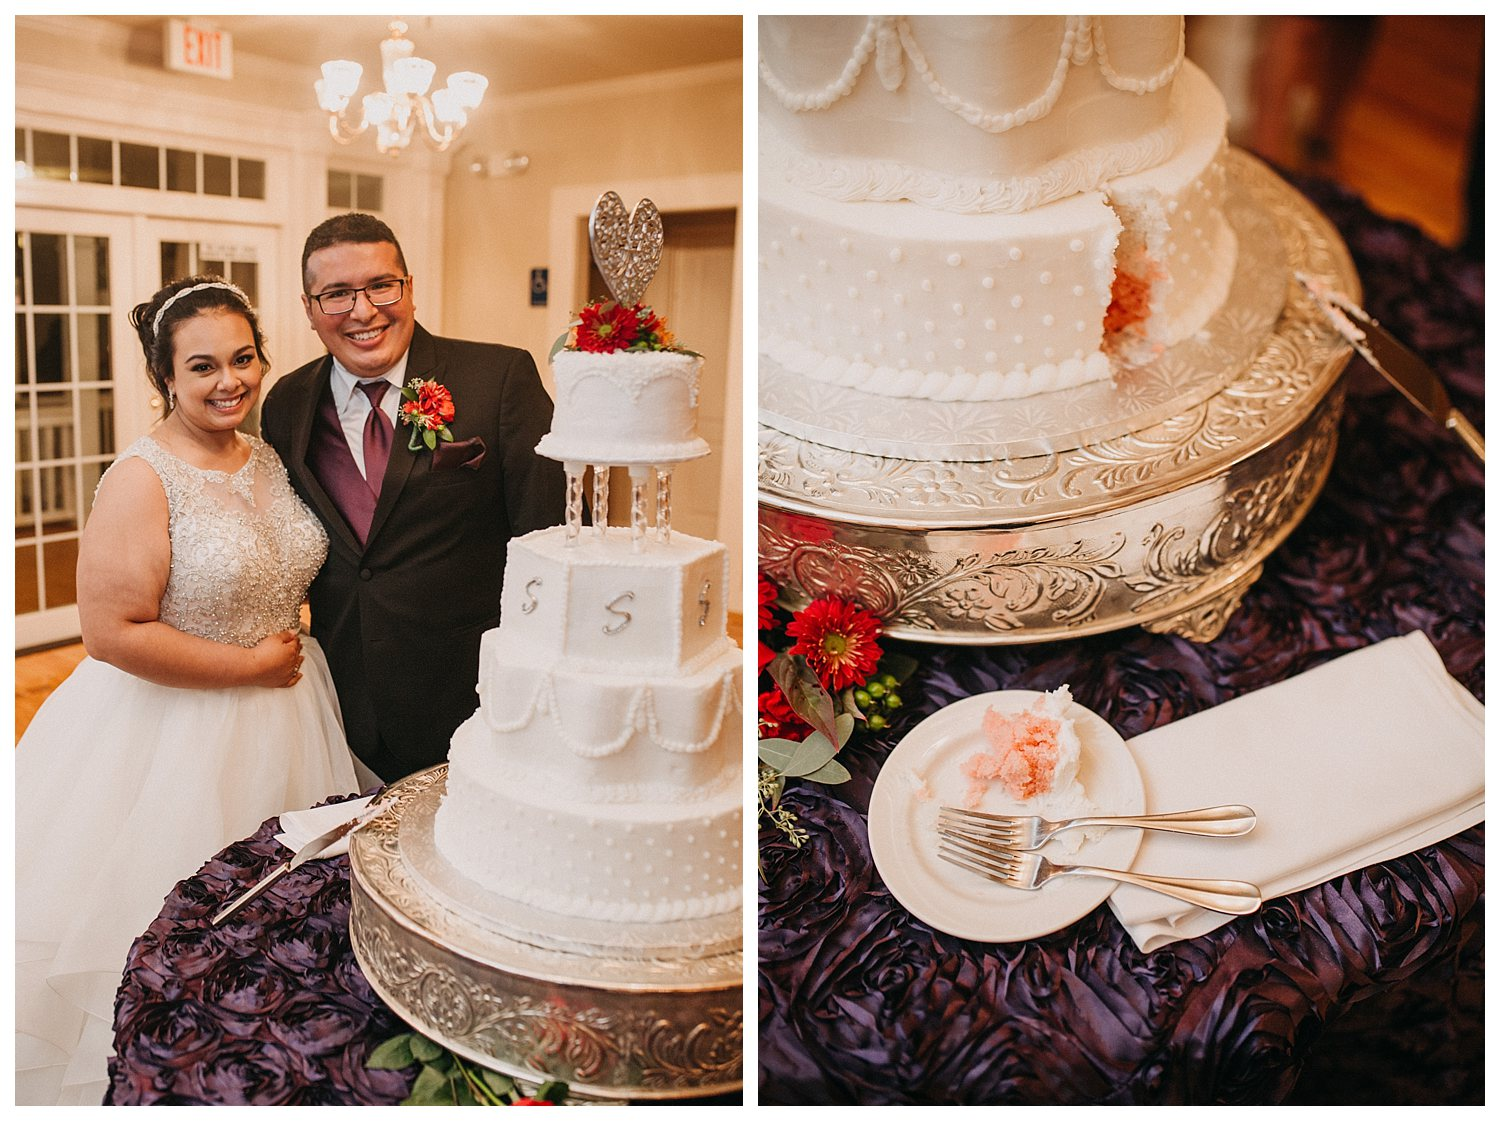 Kelsey_Diane_Photography_Hawthorne_House_Parkville_Kansas_City_Wedding_Veronica_Pat_0073.jpg